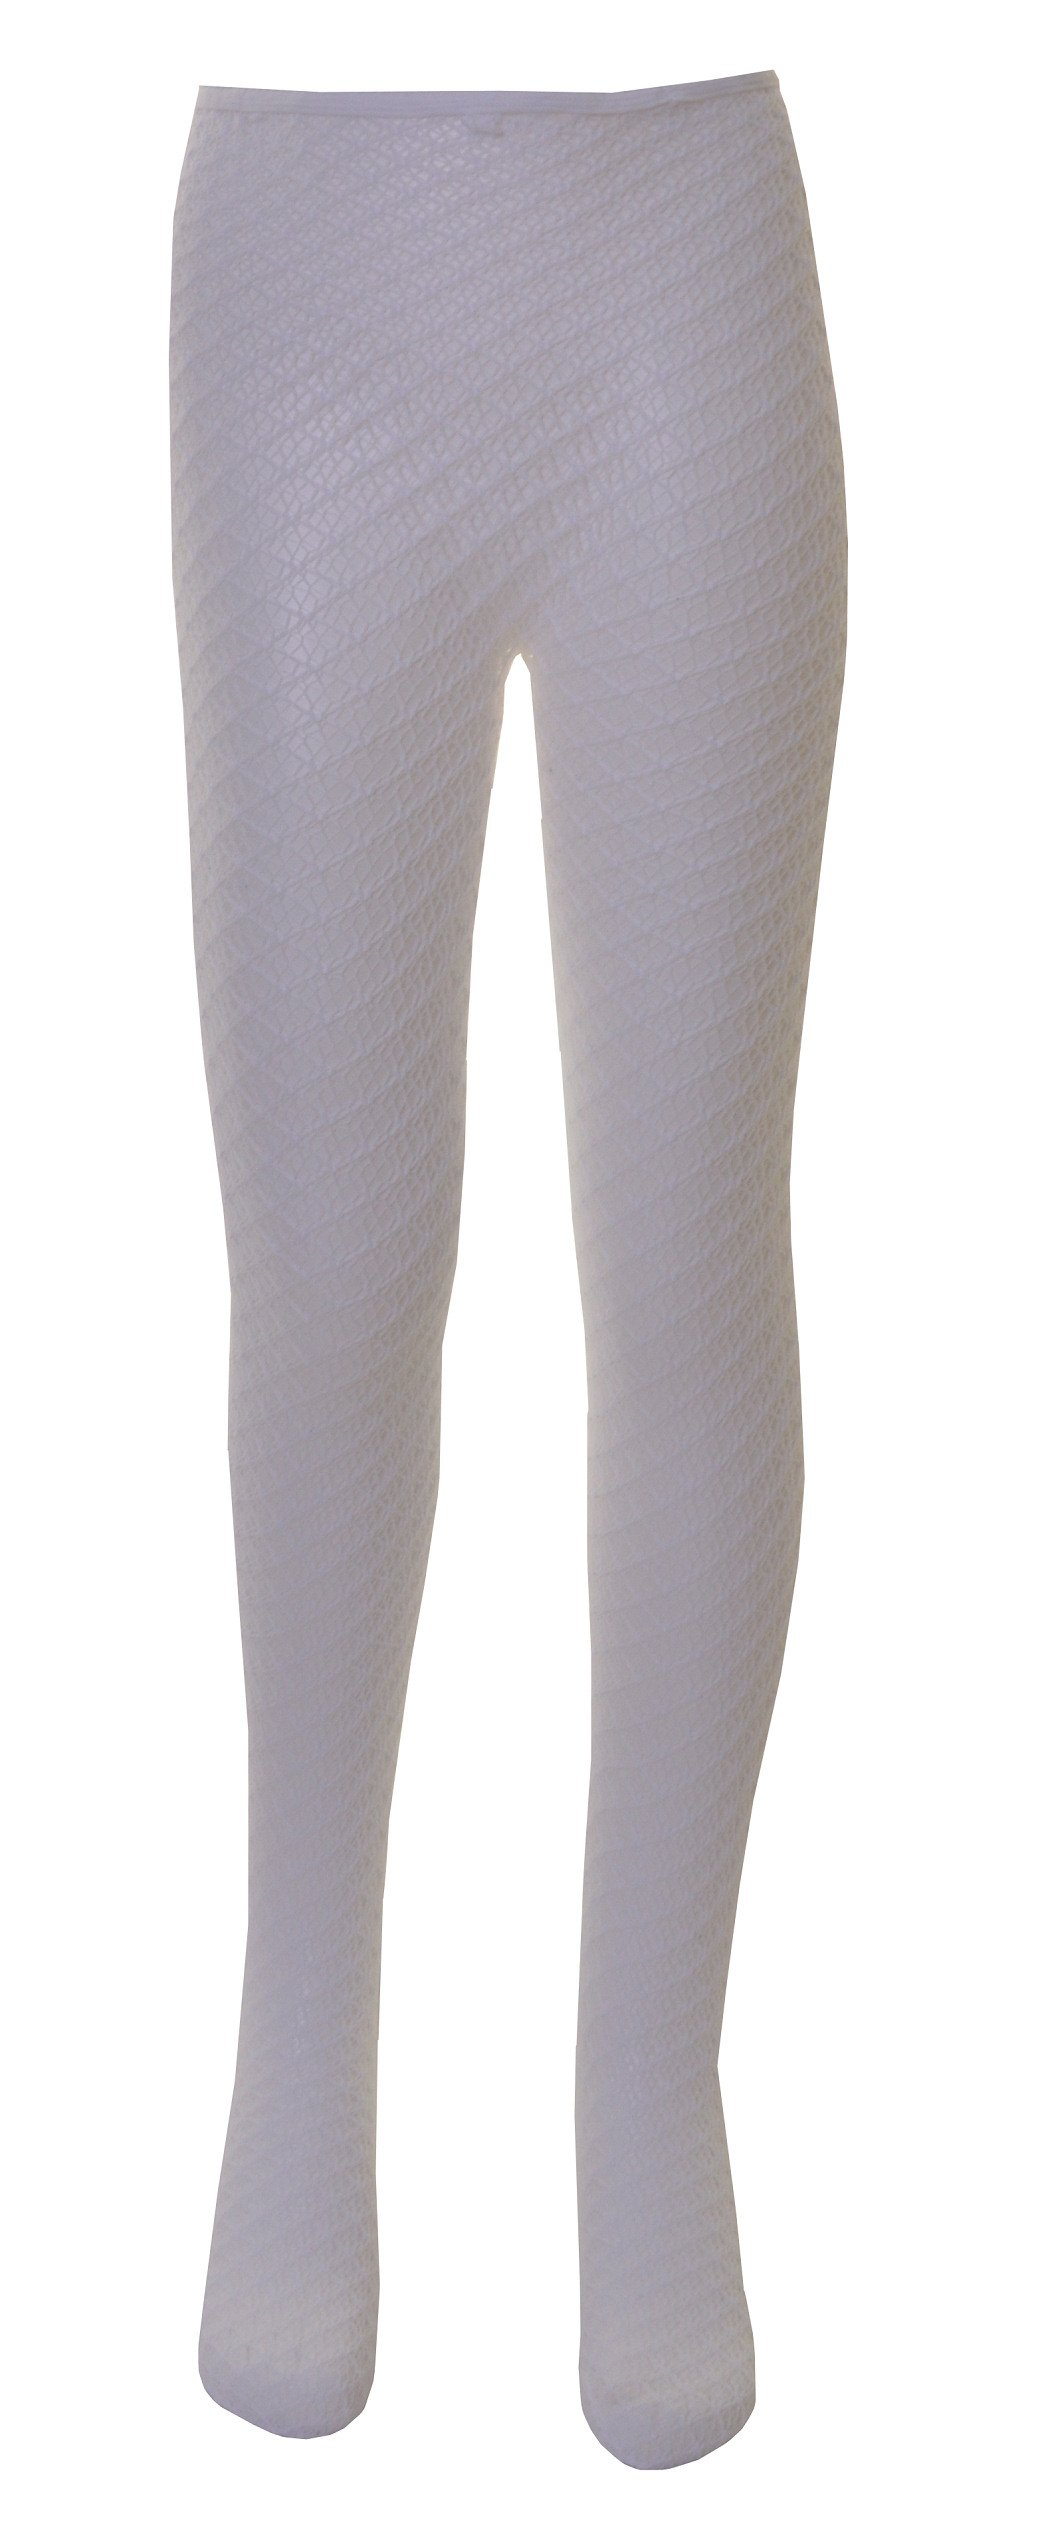 1 Pair of Girls Diamond Polymide Lace Tights Age 11 to 13 White